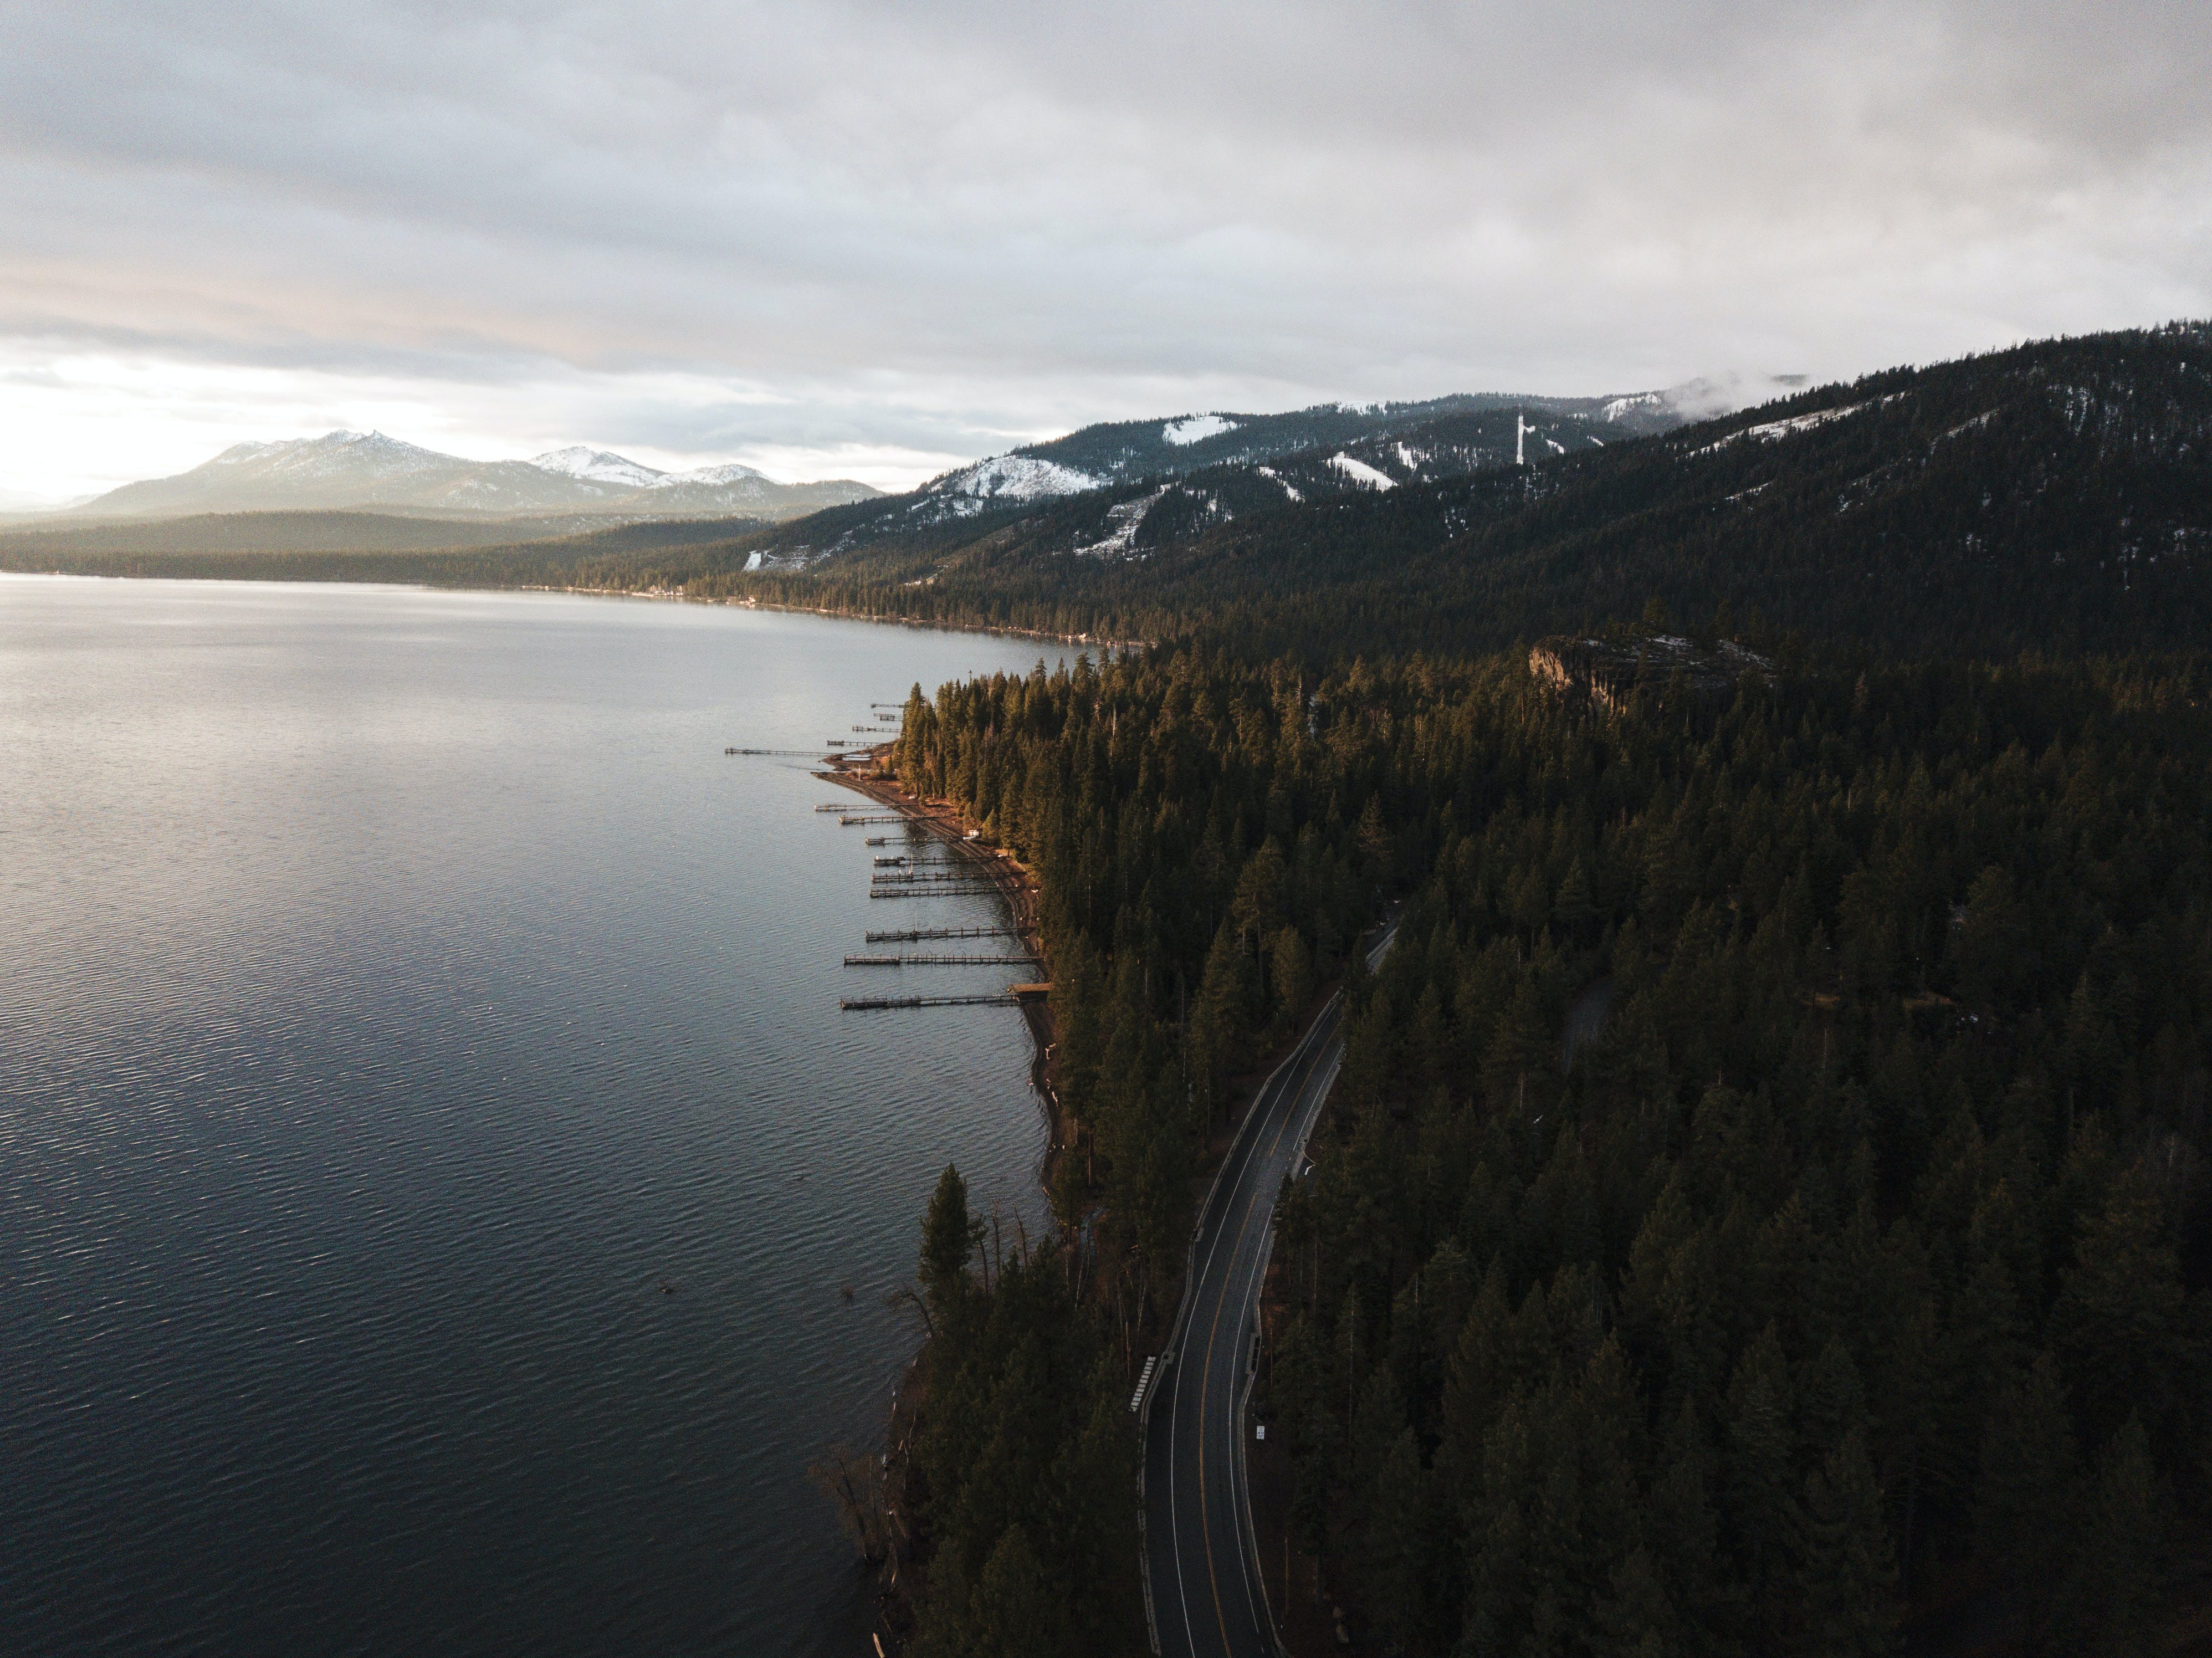 Aerial Photography of Dense Forest Near Body of Water